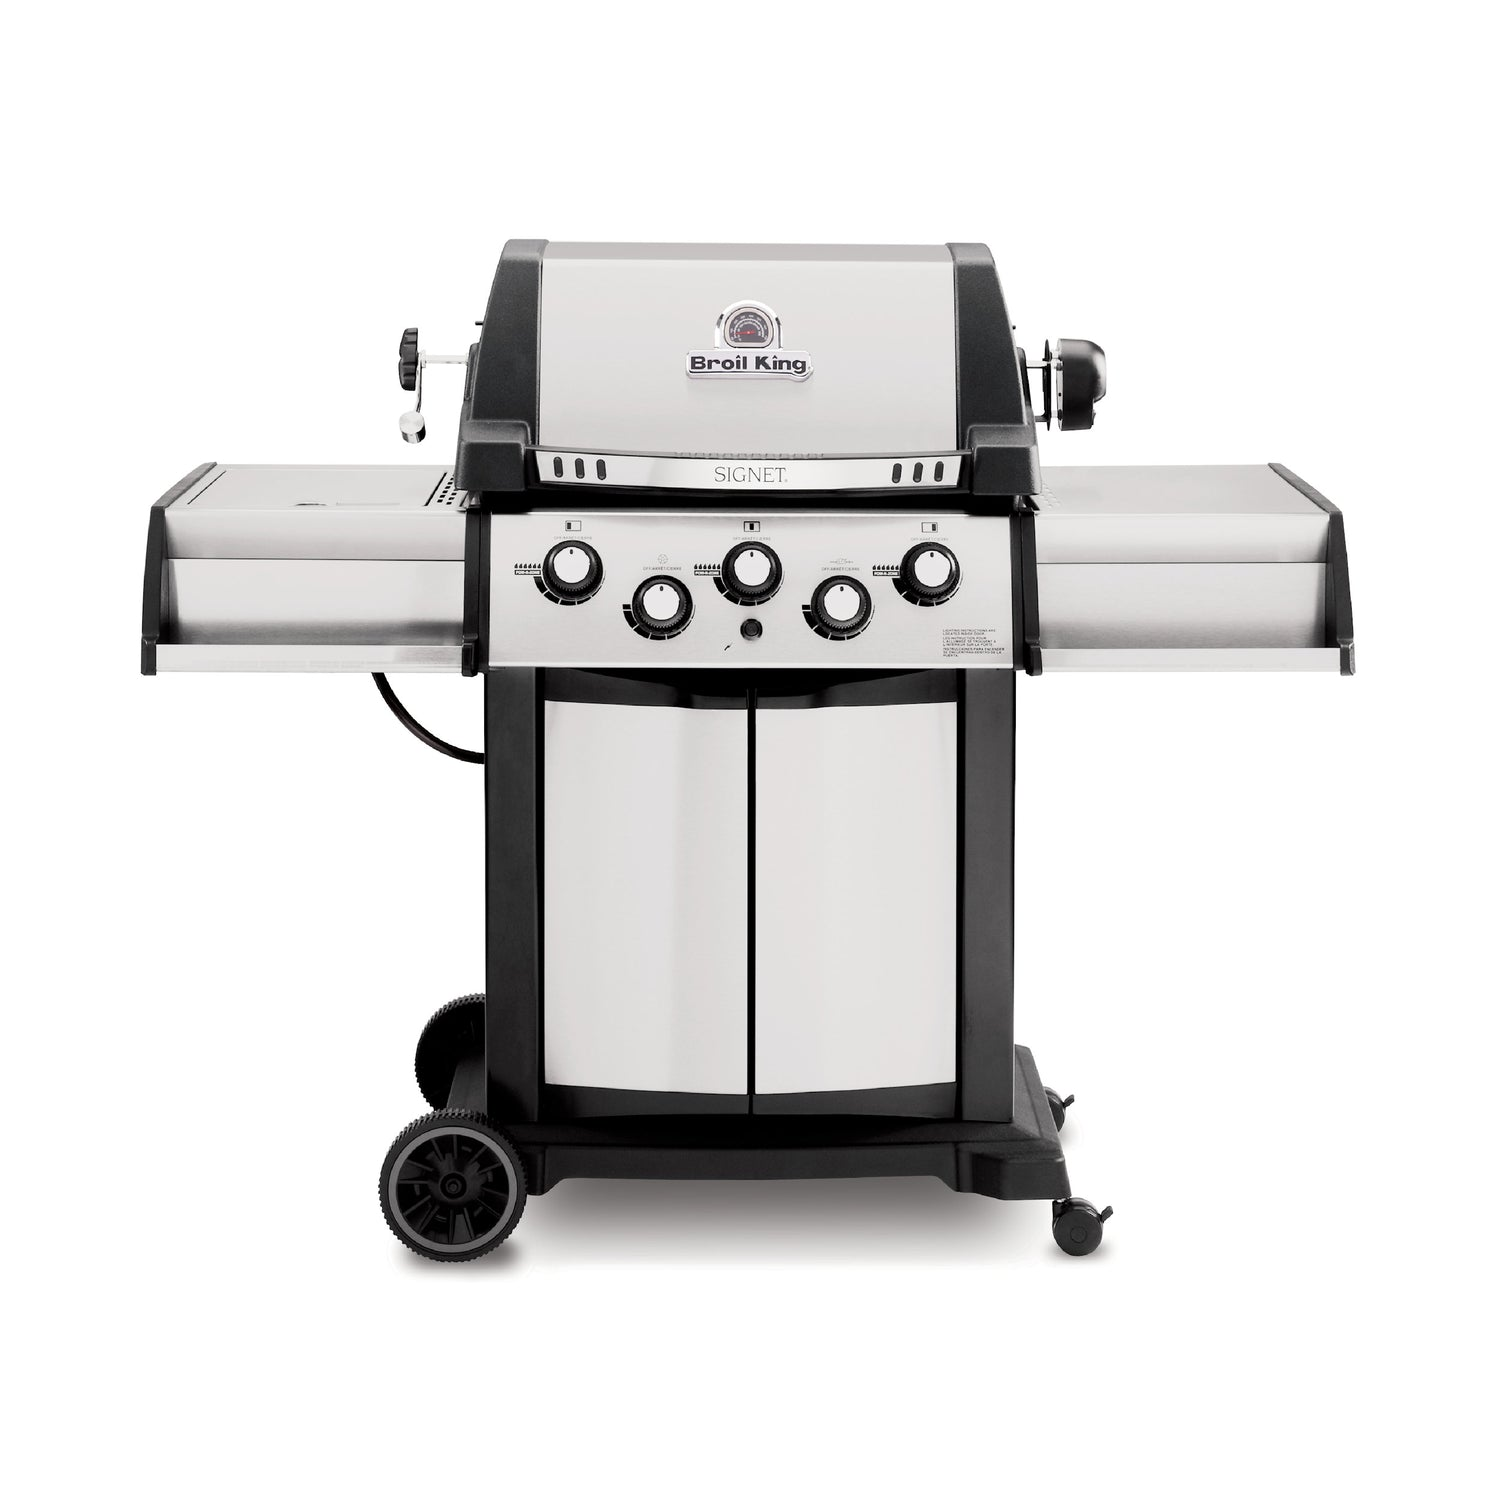 Broil King Signet 90 Gas Grill